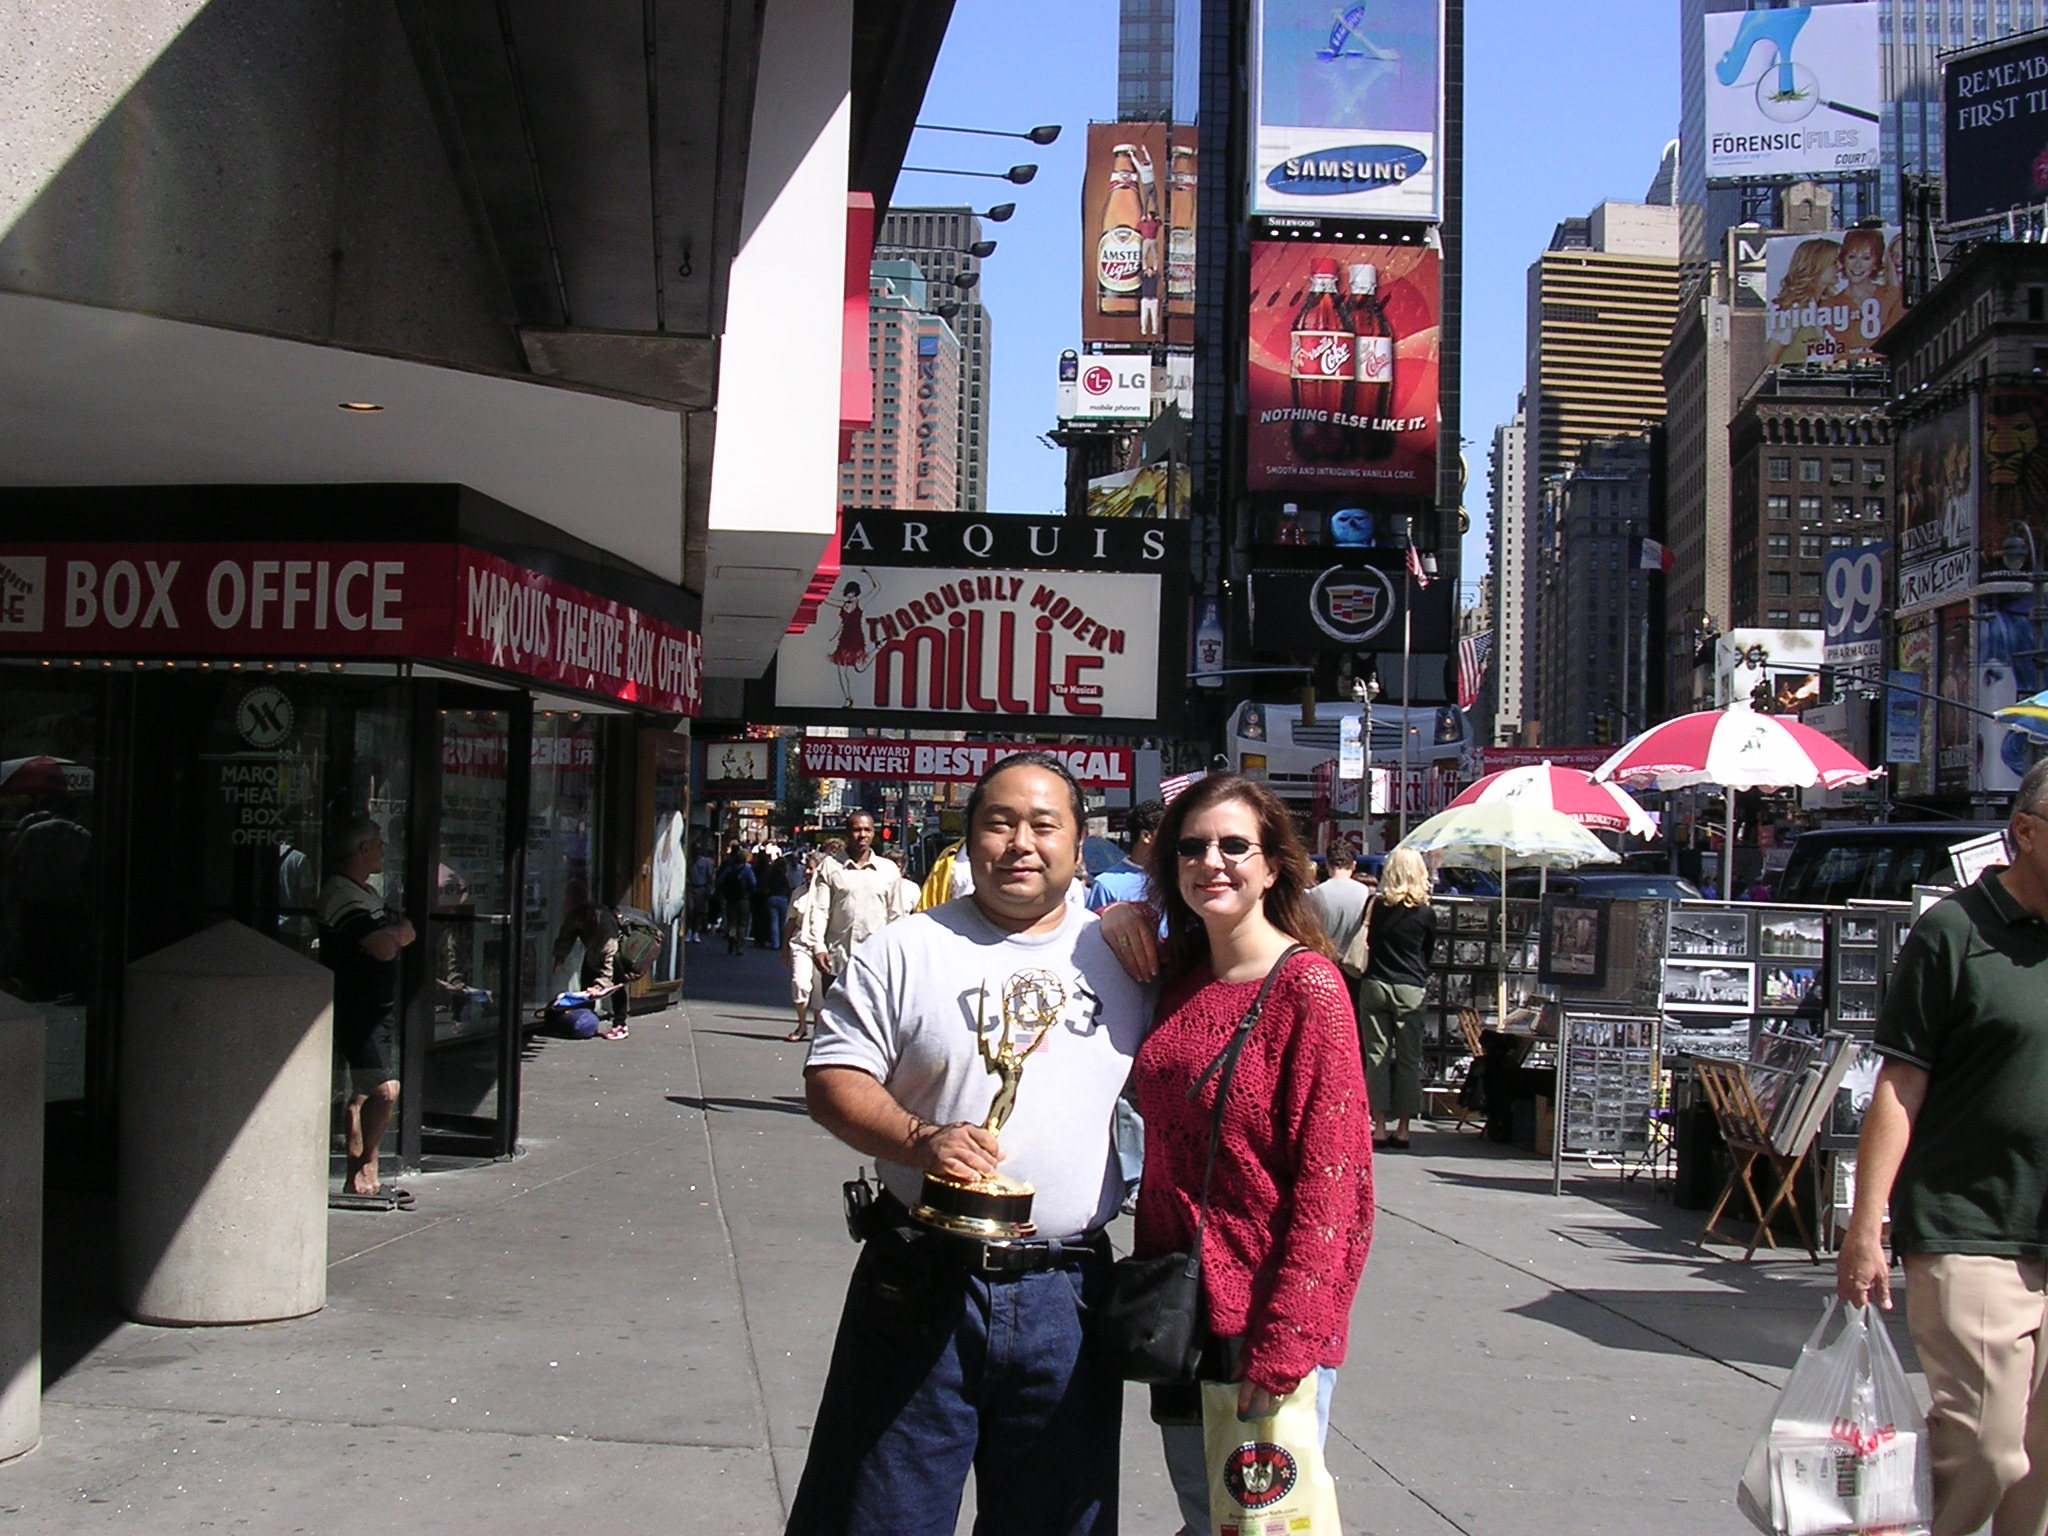 Wrapping up our time in New York, Mary and I took one last photo in front of the Marriott Marquis and called our driver to take us to the airport. Mary headed back to Scottsdale and I jumped on a Jet Blue flight back to Long Beach. When I was going through the TSA checkpoint the officer scanning the carry on luggage stopped and asked who won the Emmy. I identified myself and a loud cheer erupted from the security que. Unfortunately no photos are allowed to be taken at TSA checkpoints but I can assure you Emmy got a lot of attention and a very nice NYC send off.